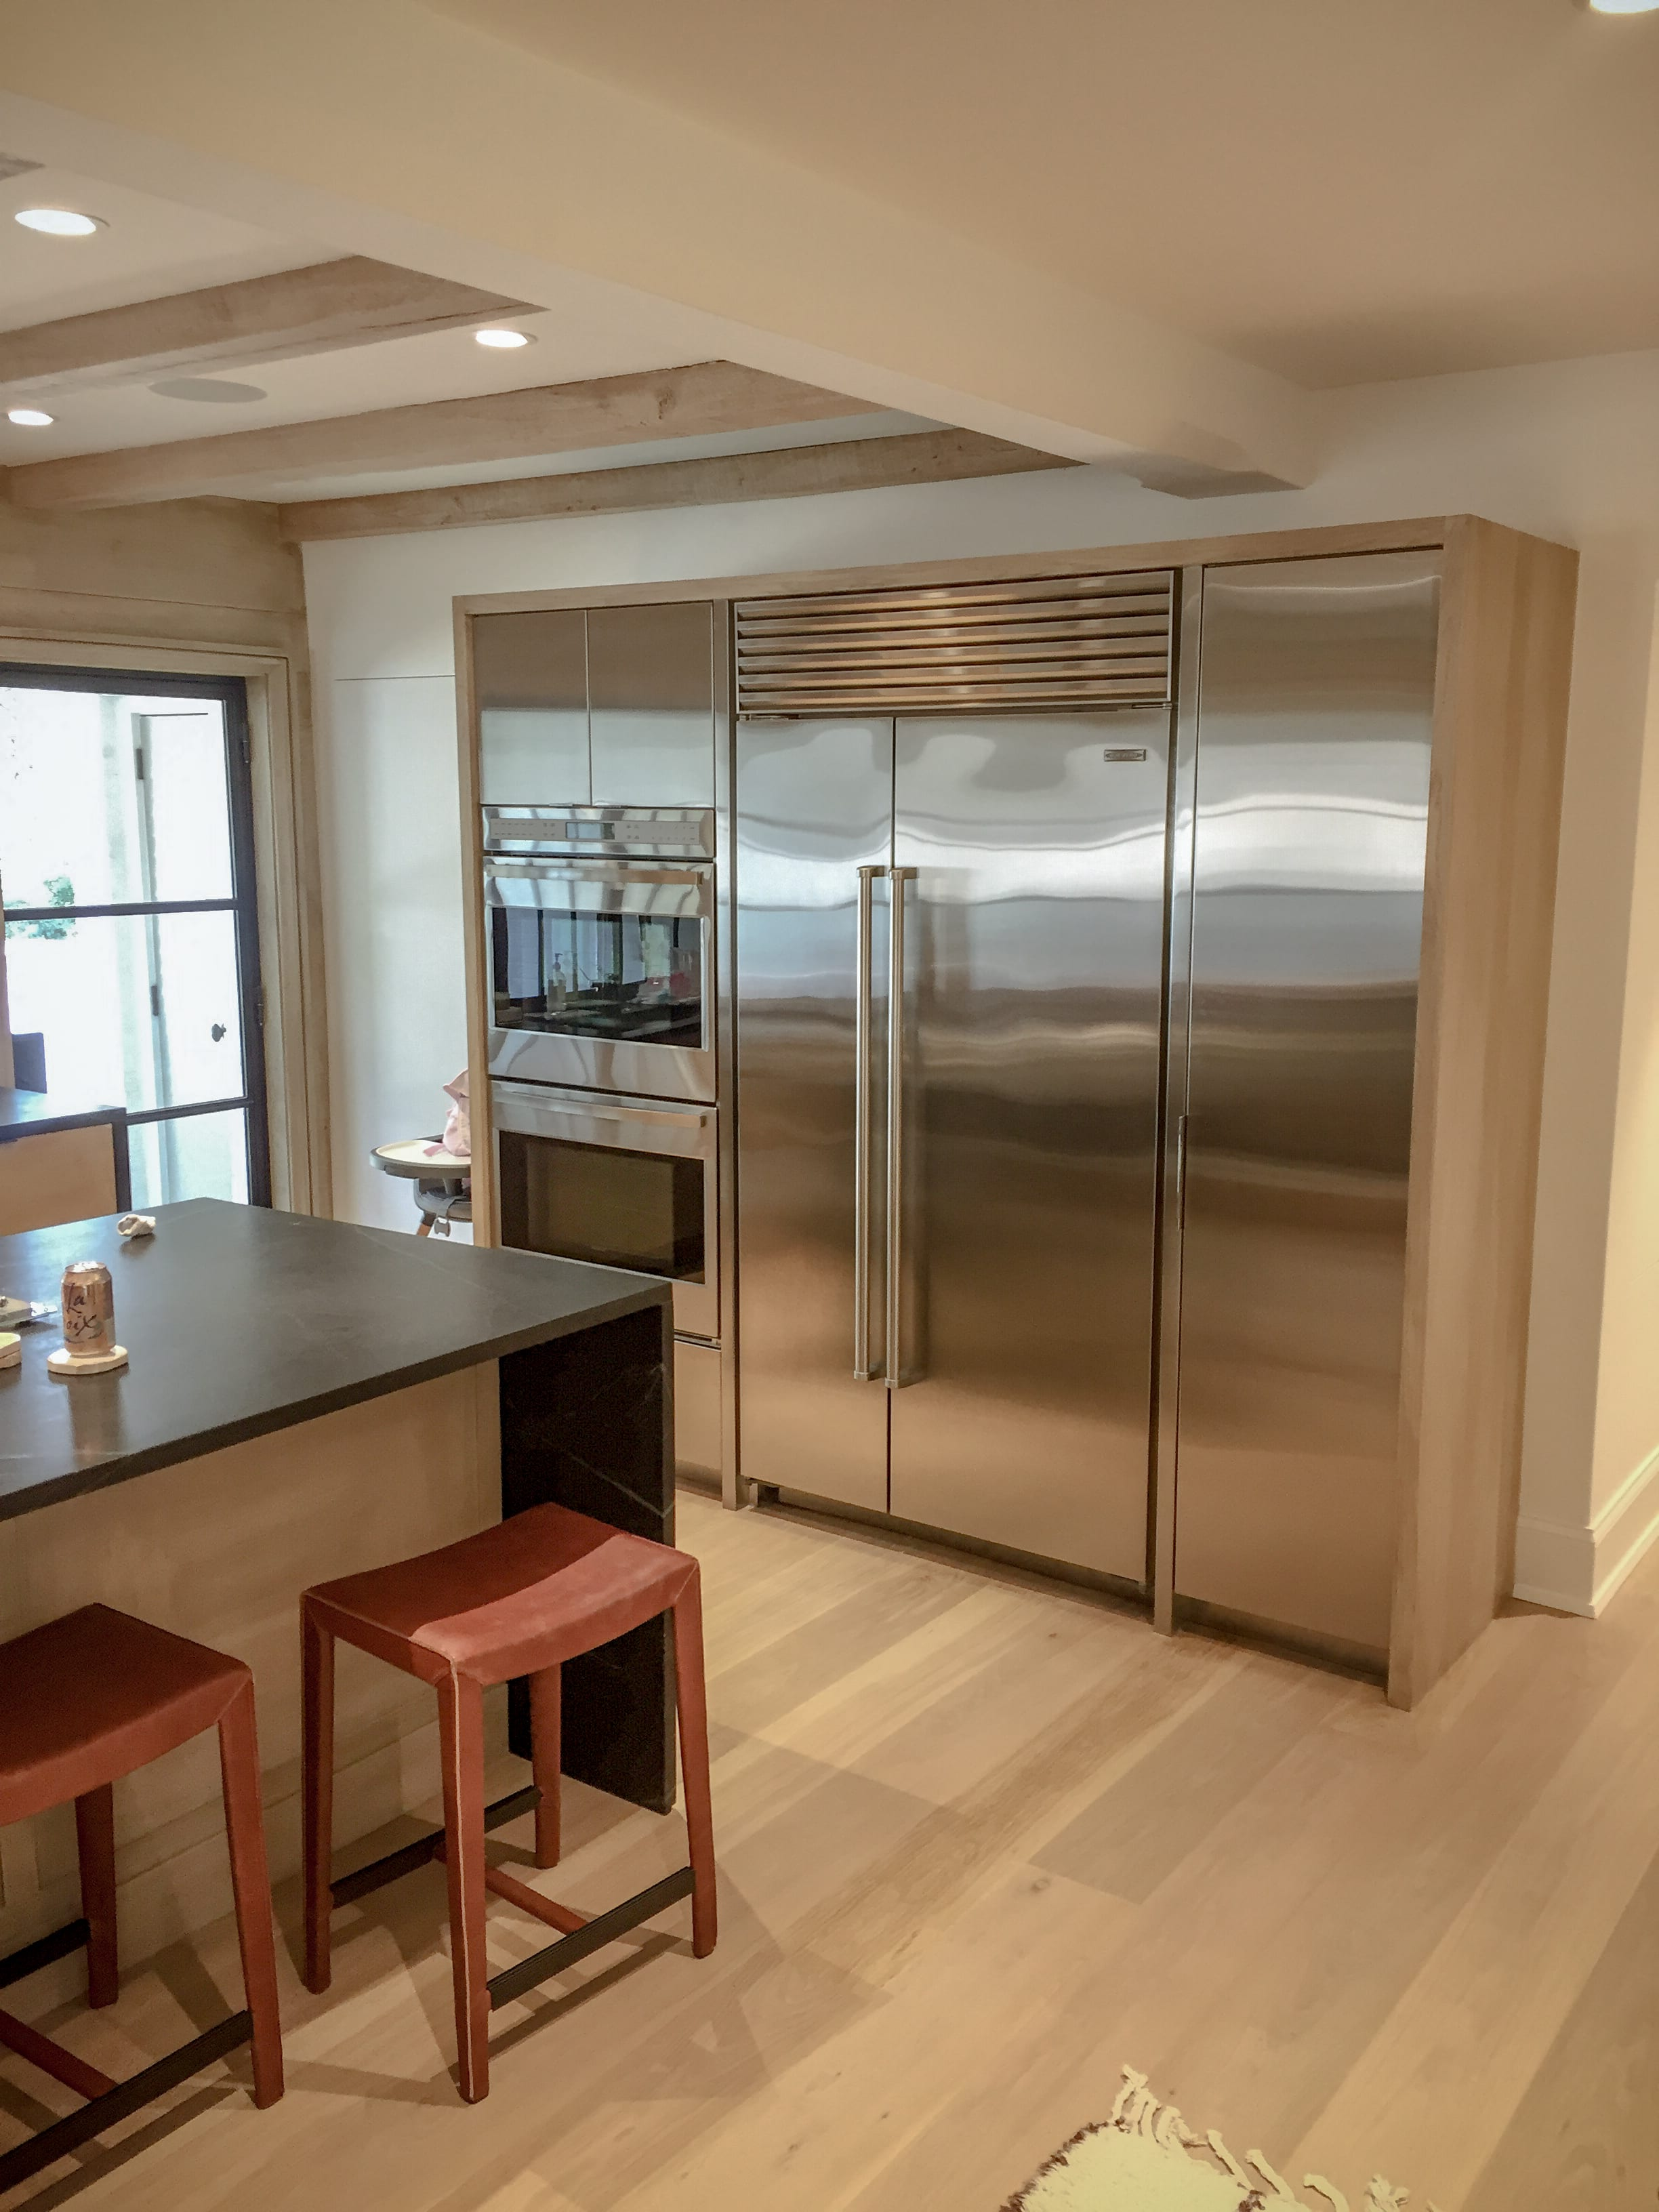 Stainless Steel Kitchen With Light Wood detailing